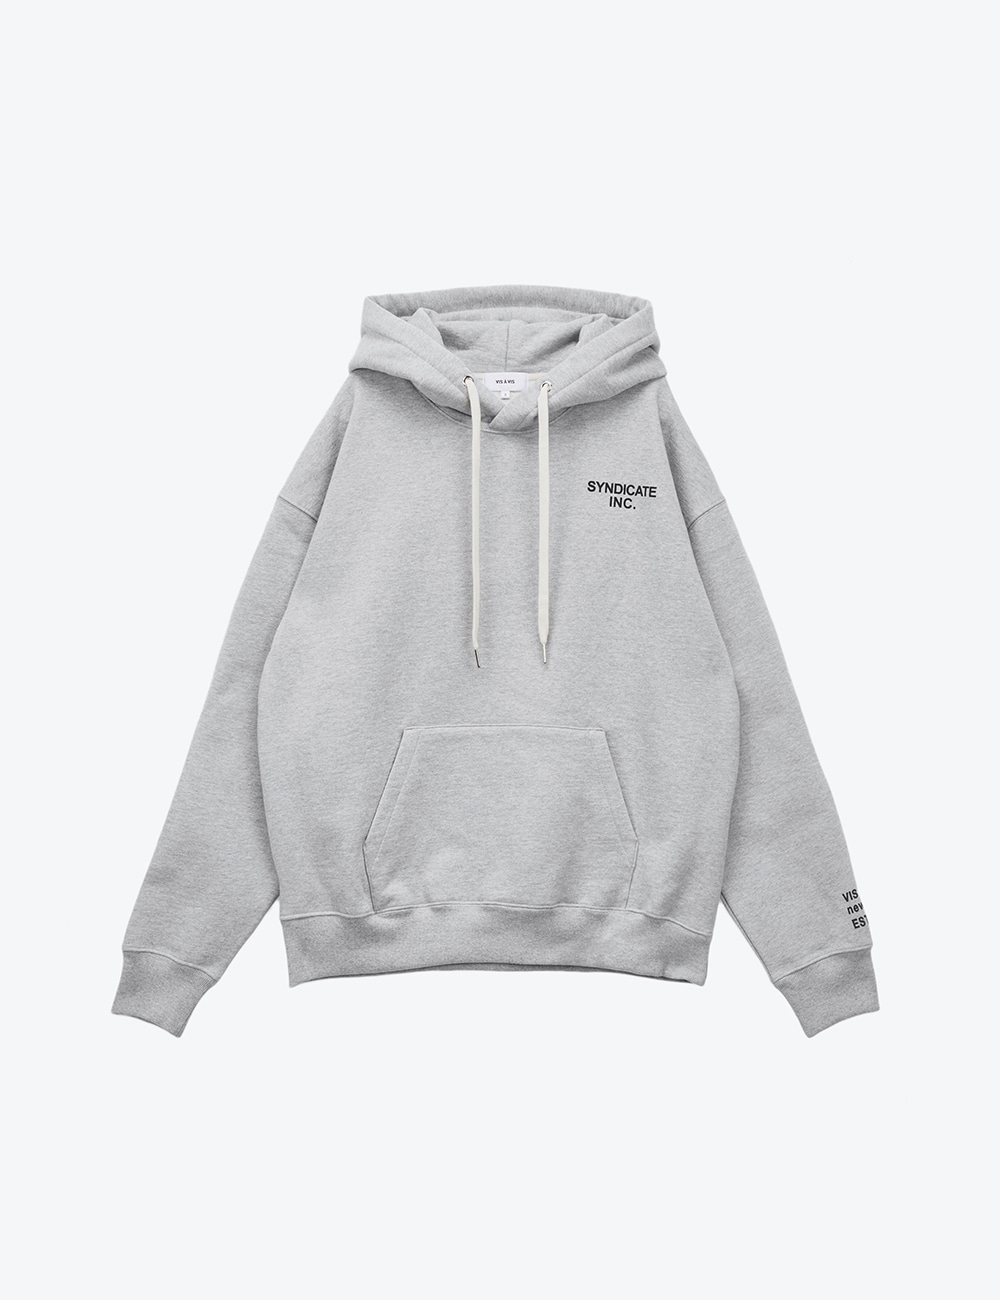 SYNDICATE UNISEX HOODED SWEATSHIRT (GRAY)